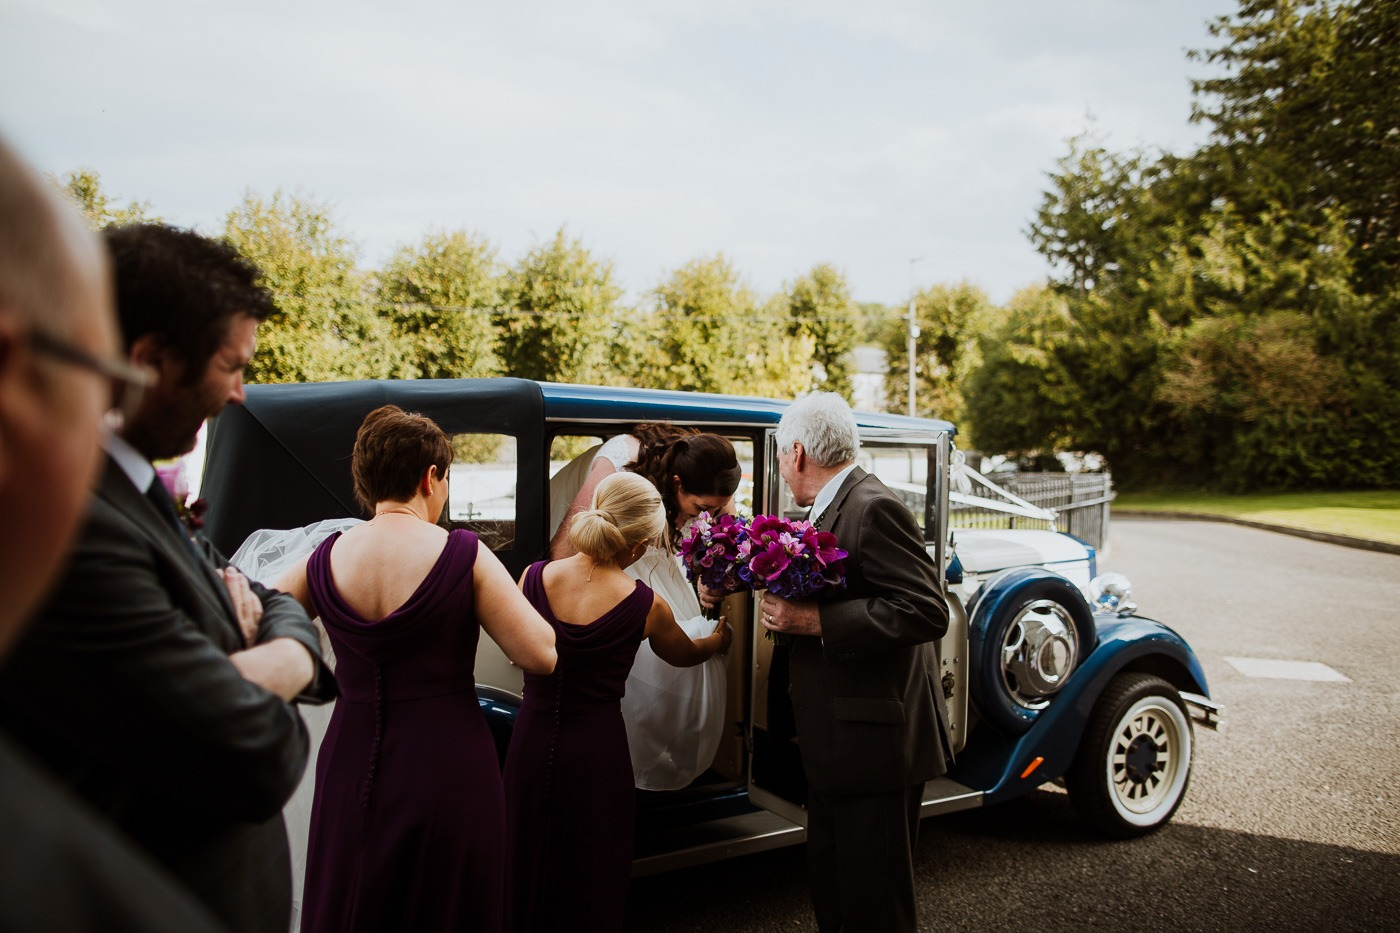 A group of people standing in front of a car